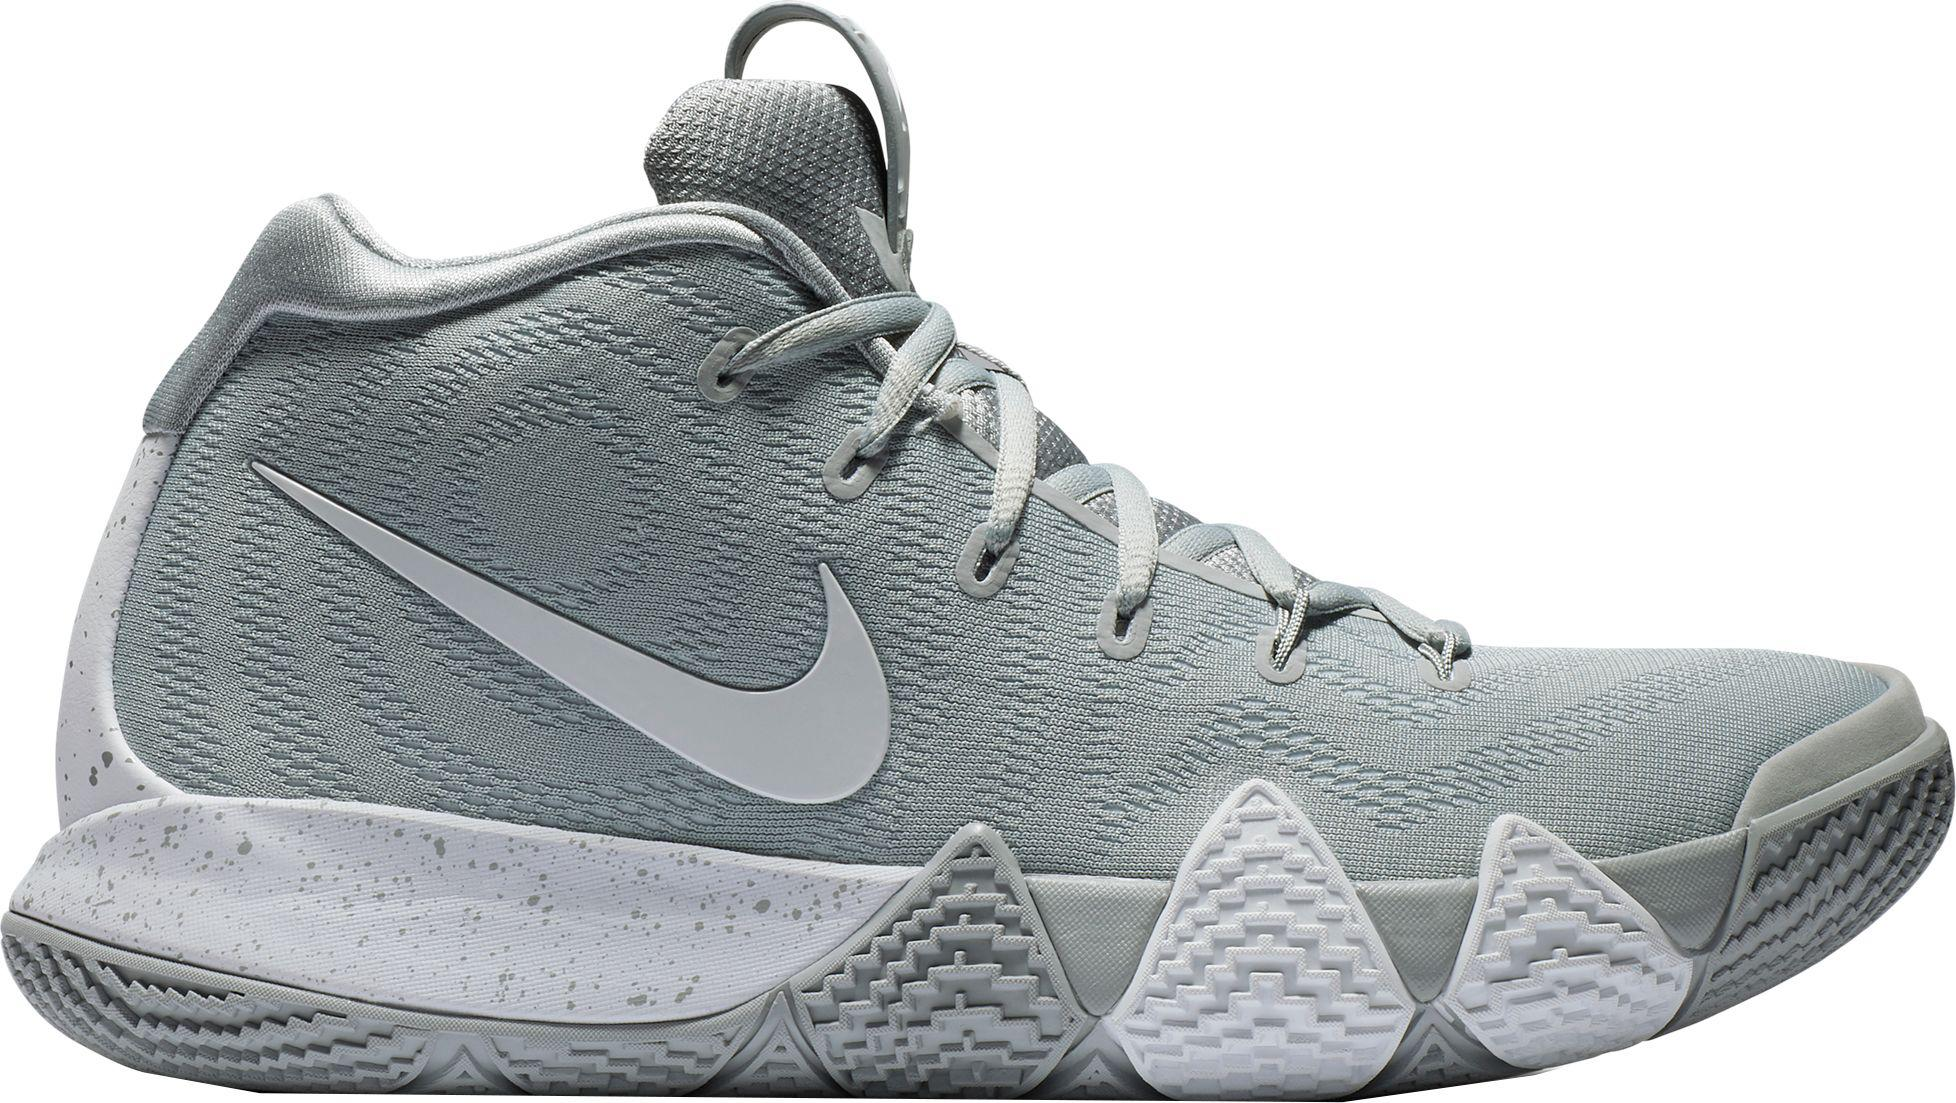 ea8f35cff2b ... wholesale nike. mens gray kyrie 4 tb basketball shoes. 120 from dicks  sporting goods